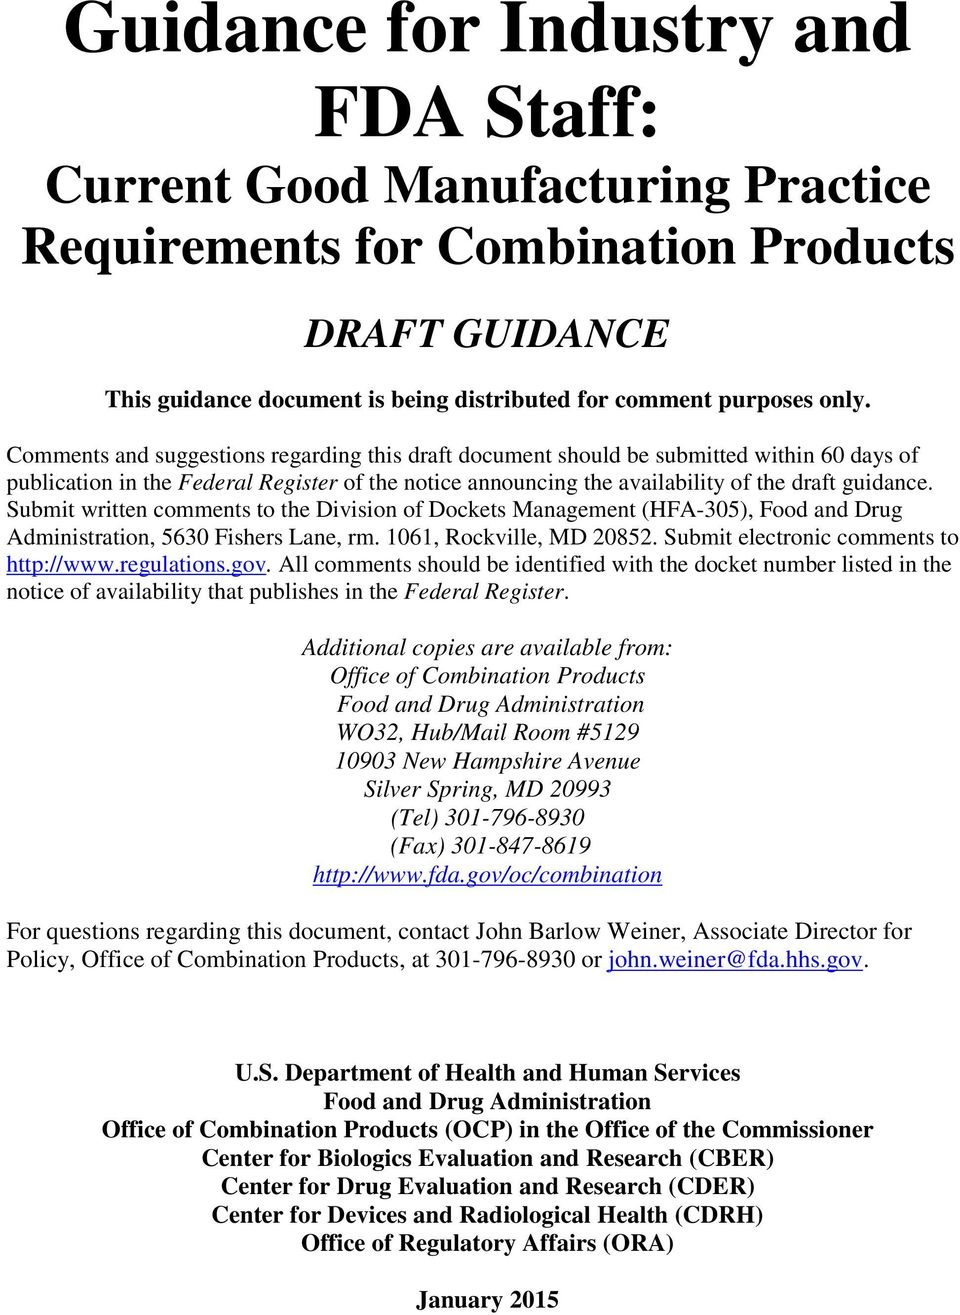 Guidance for Industry and FDA Staff: Current Good